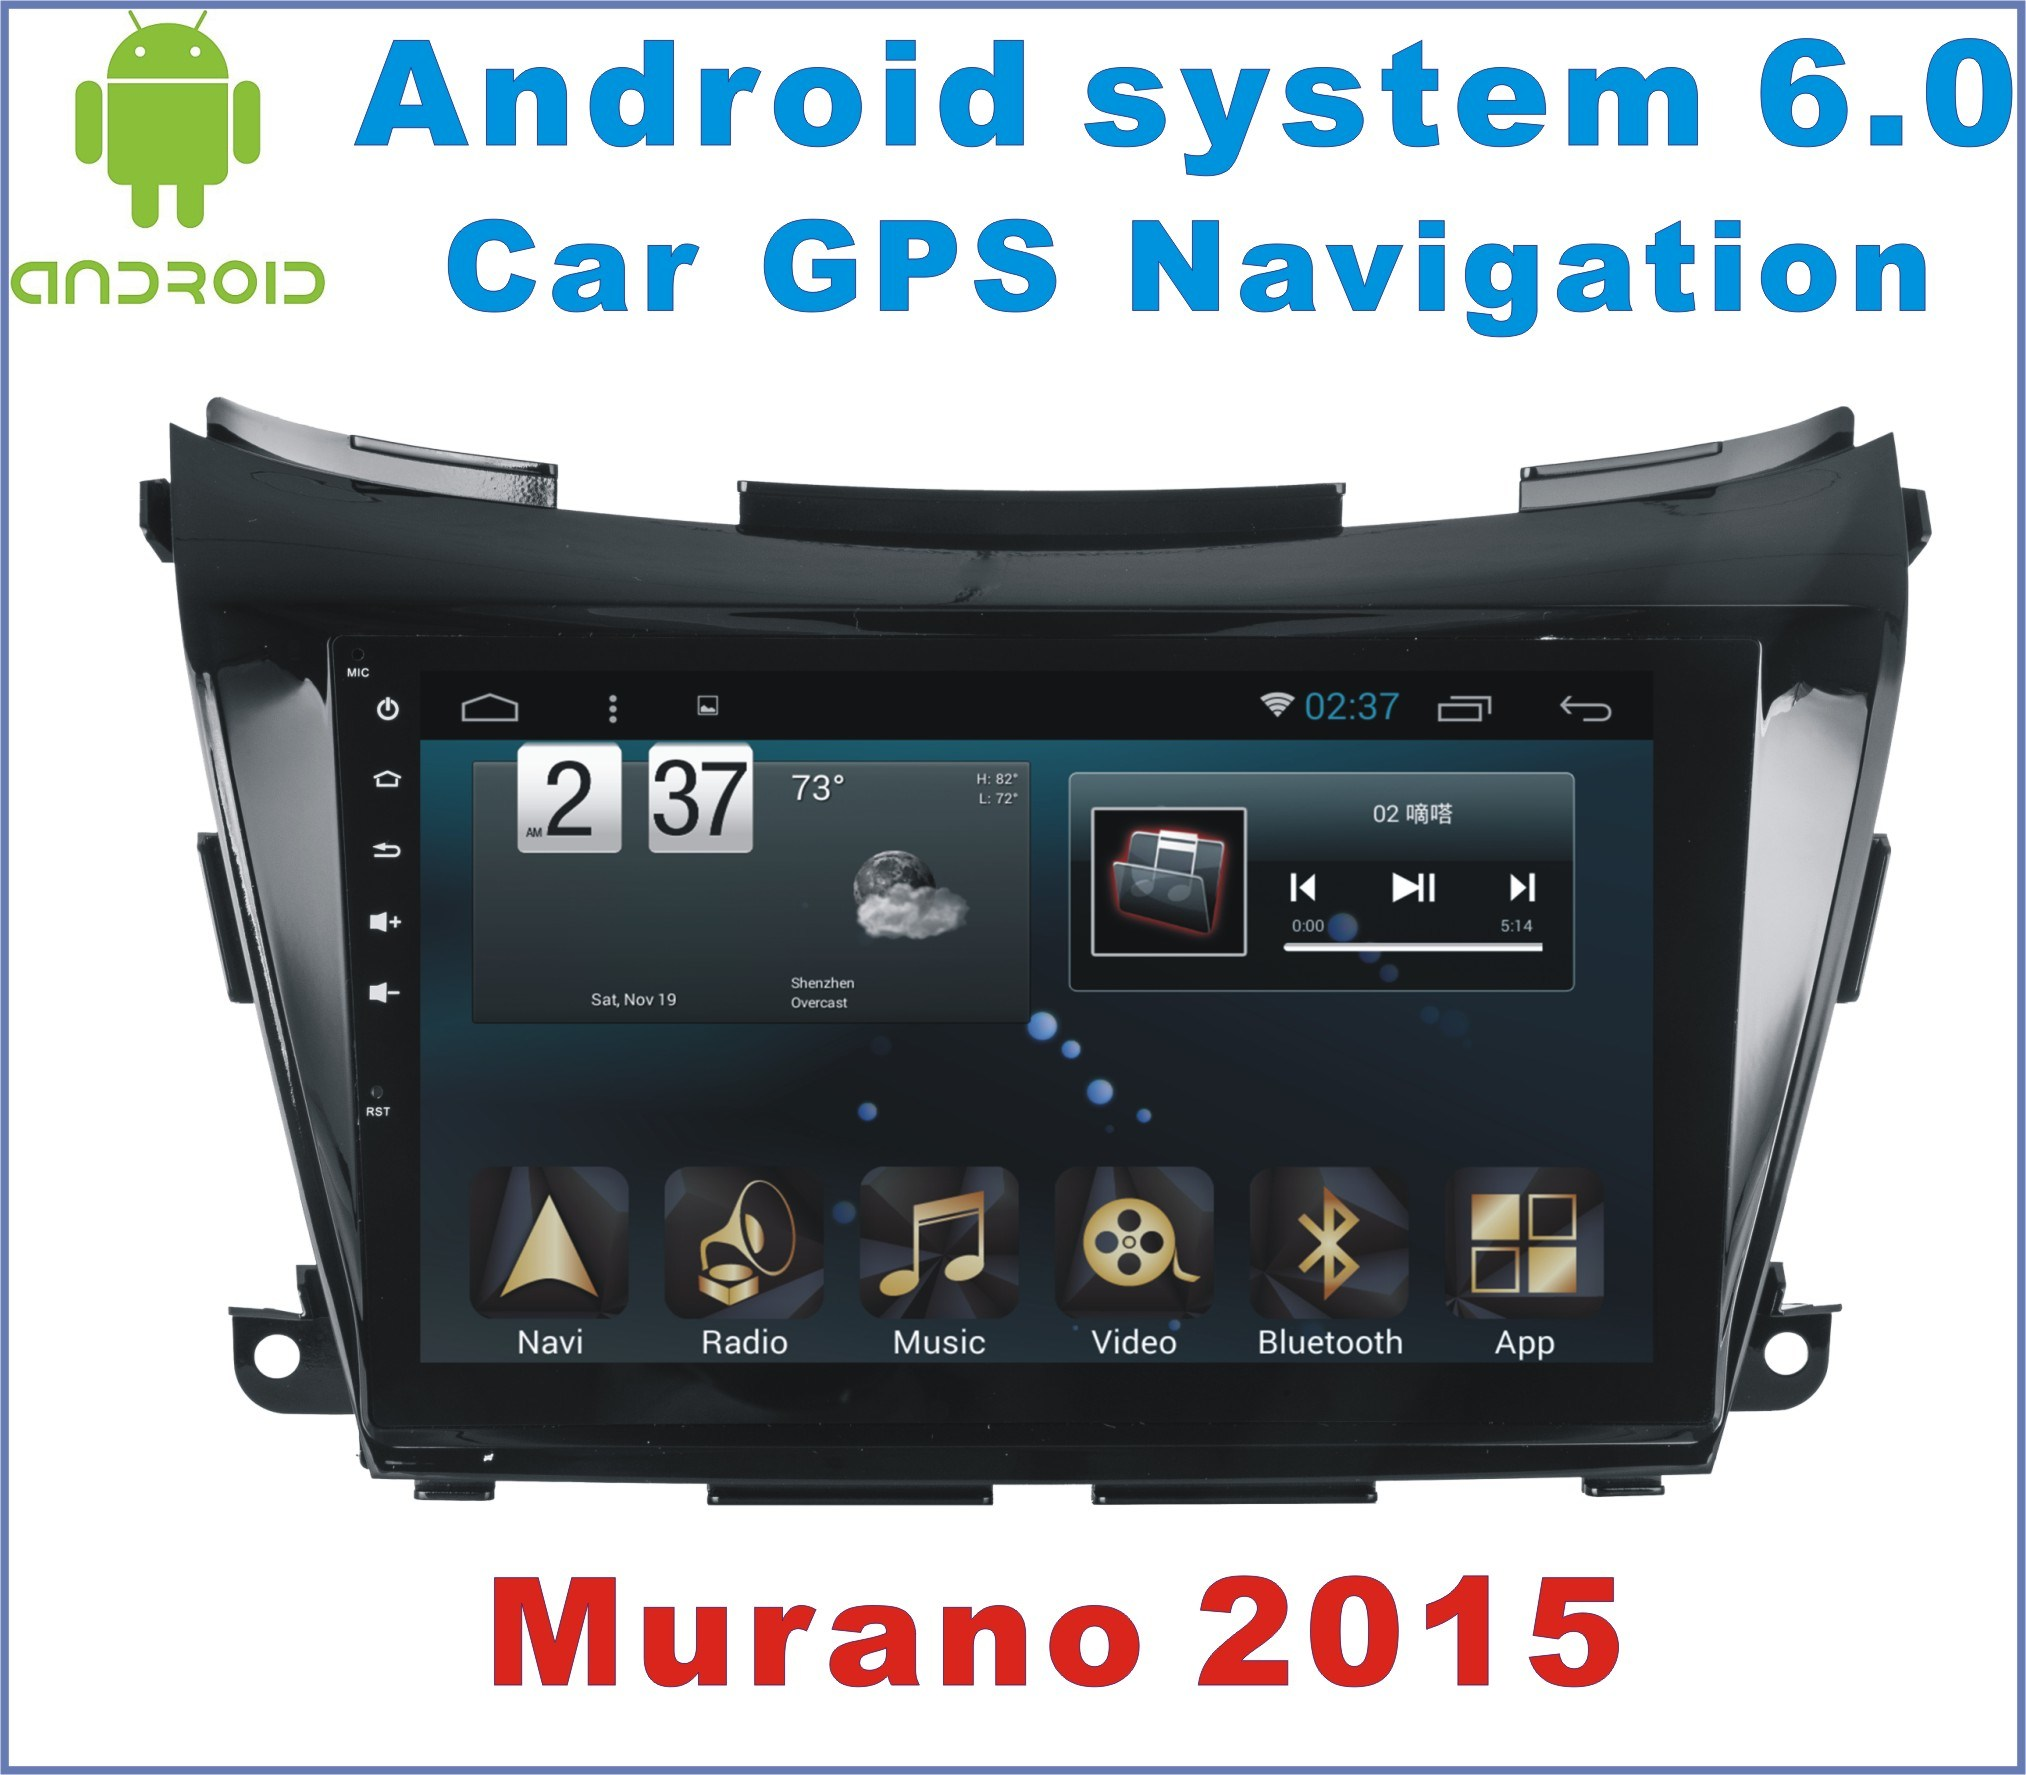 Android 6.0 Car DVD Player for Nissan Murano 2015 with Car GPS Navigation